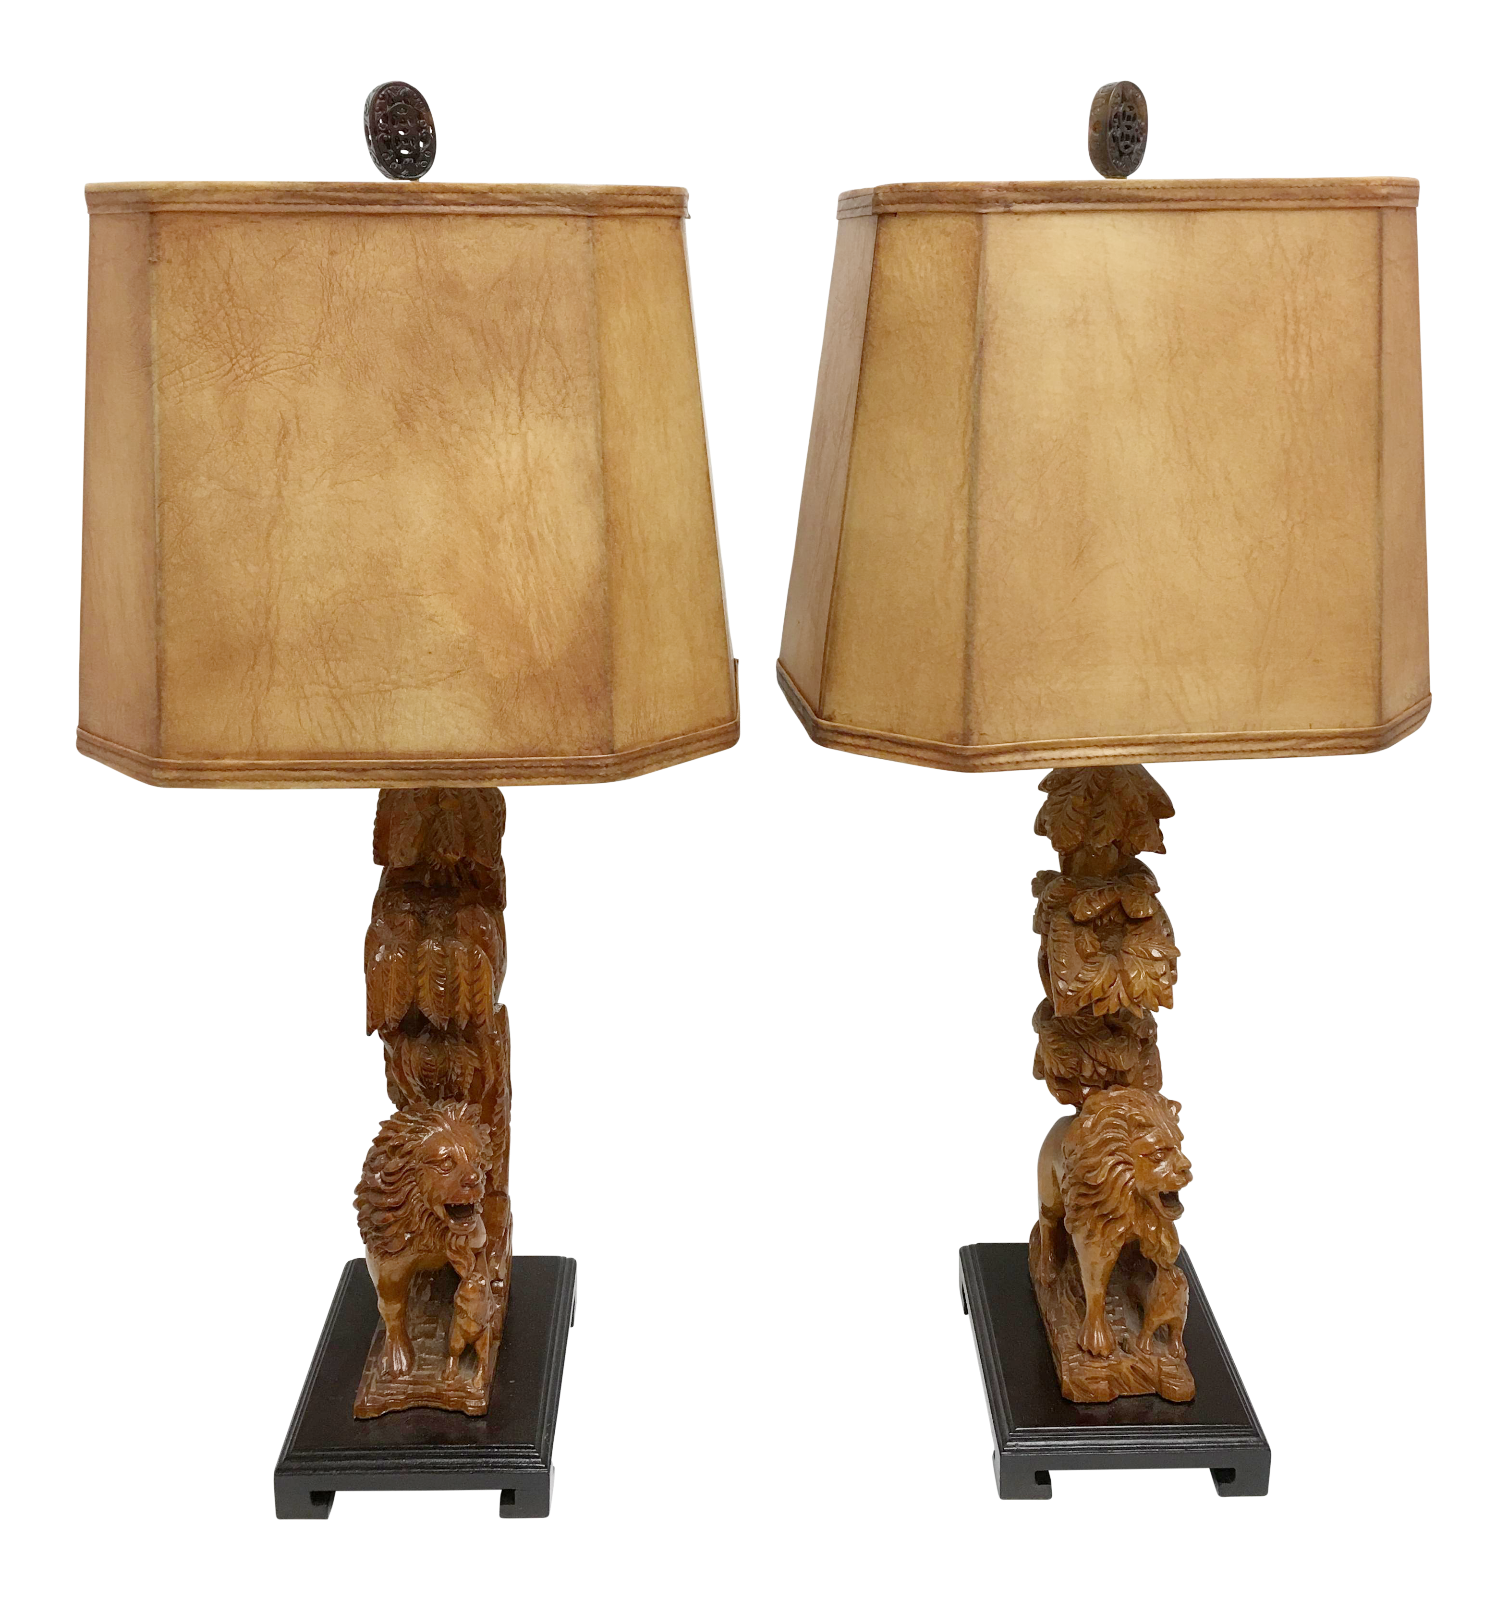 Carved Wood Lion Table Lamps A Pair Wood Carving Table Lamp Wood